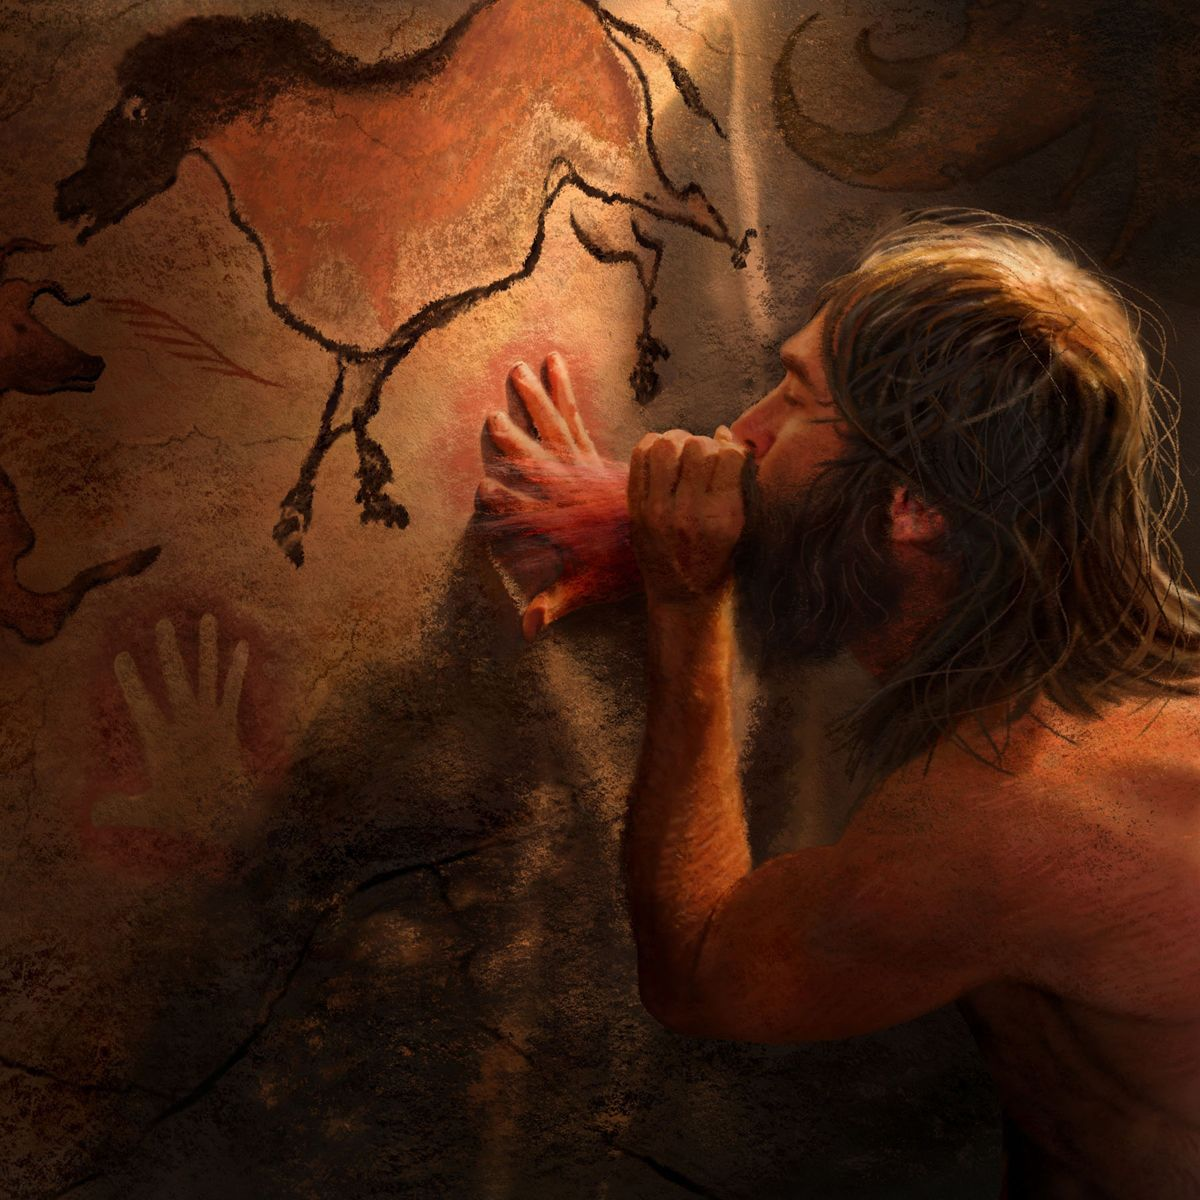 Cave Men Painting On Walls Interesting Perspective